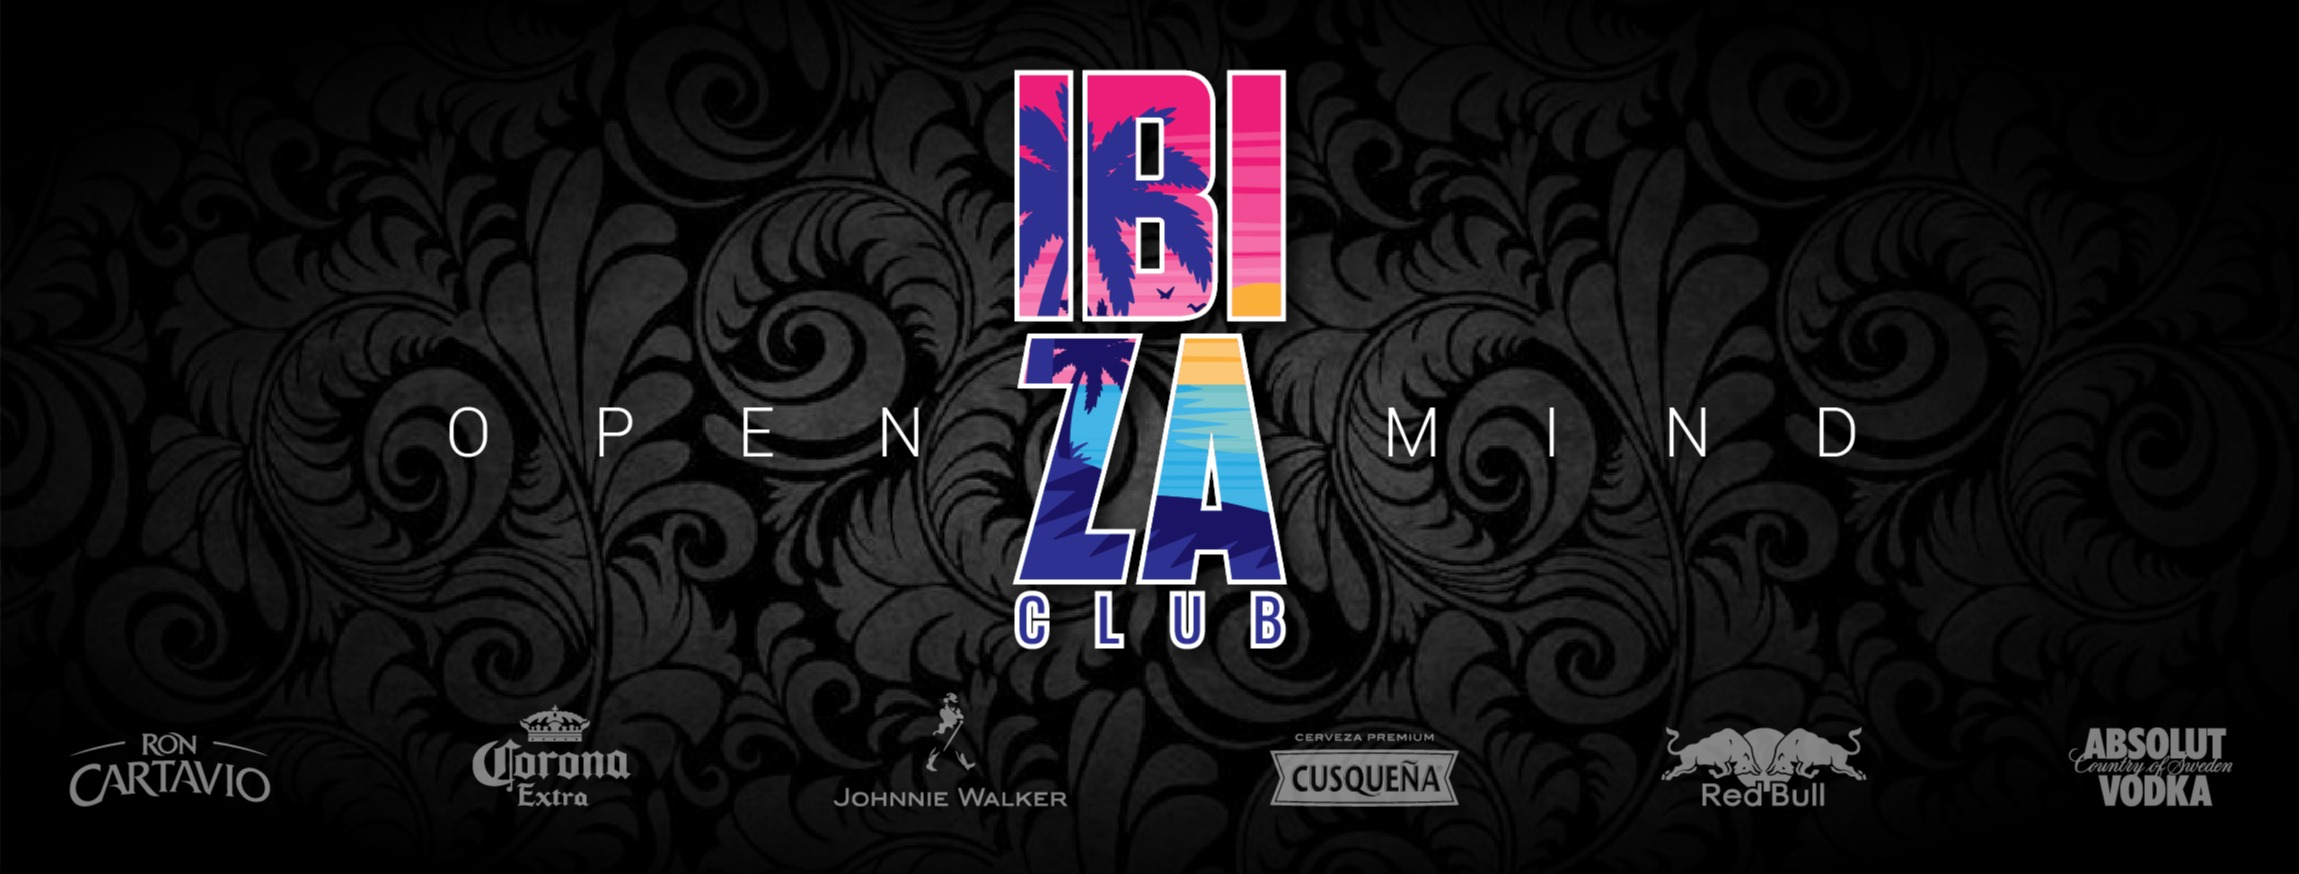 Portada Ibiza Club cusco